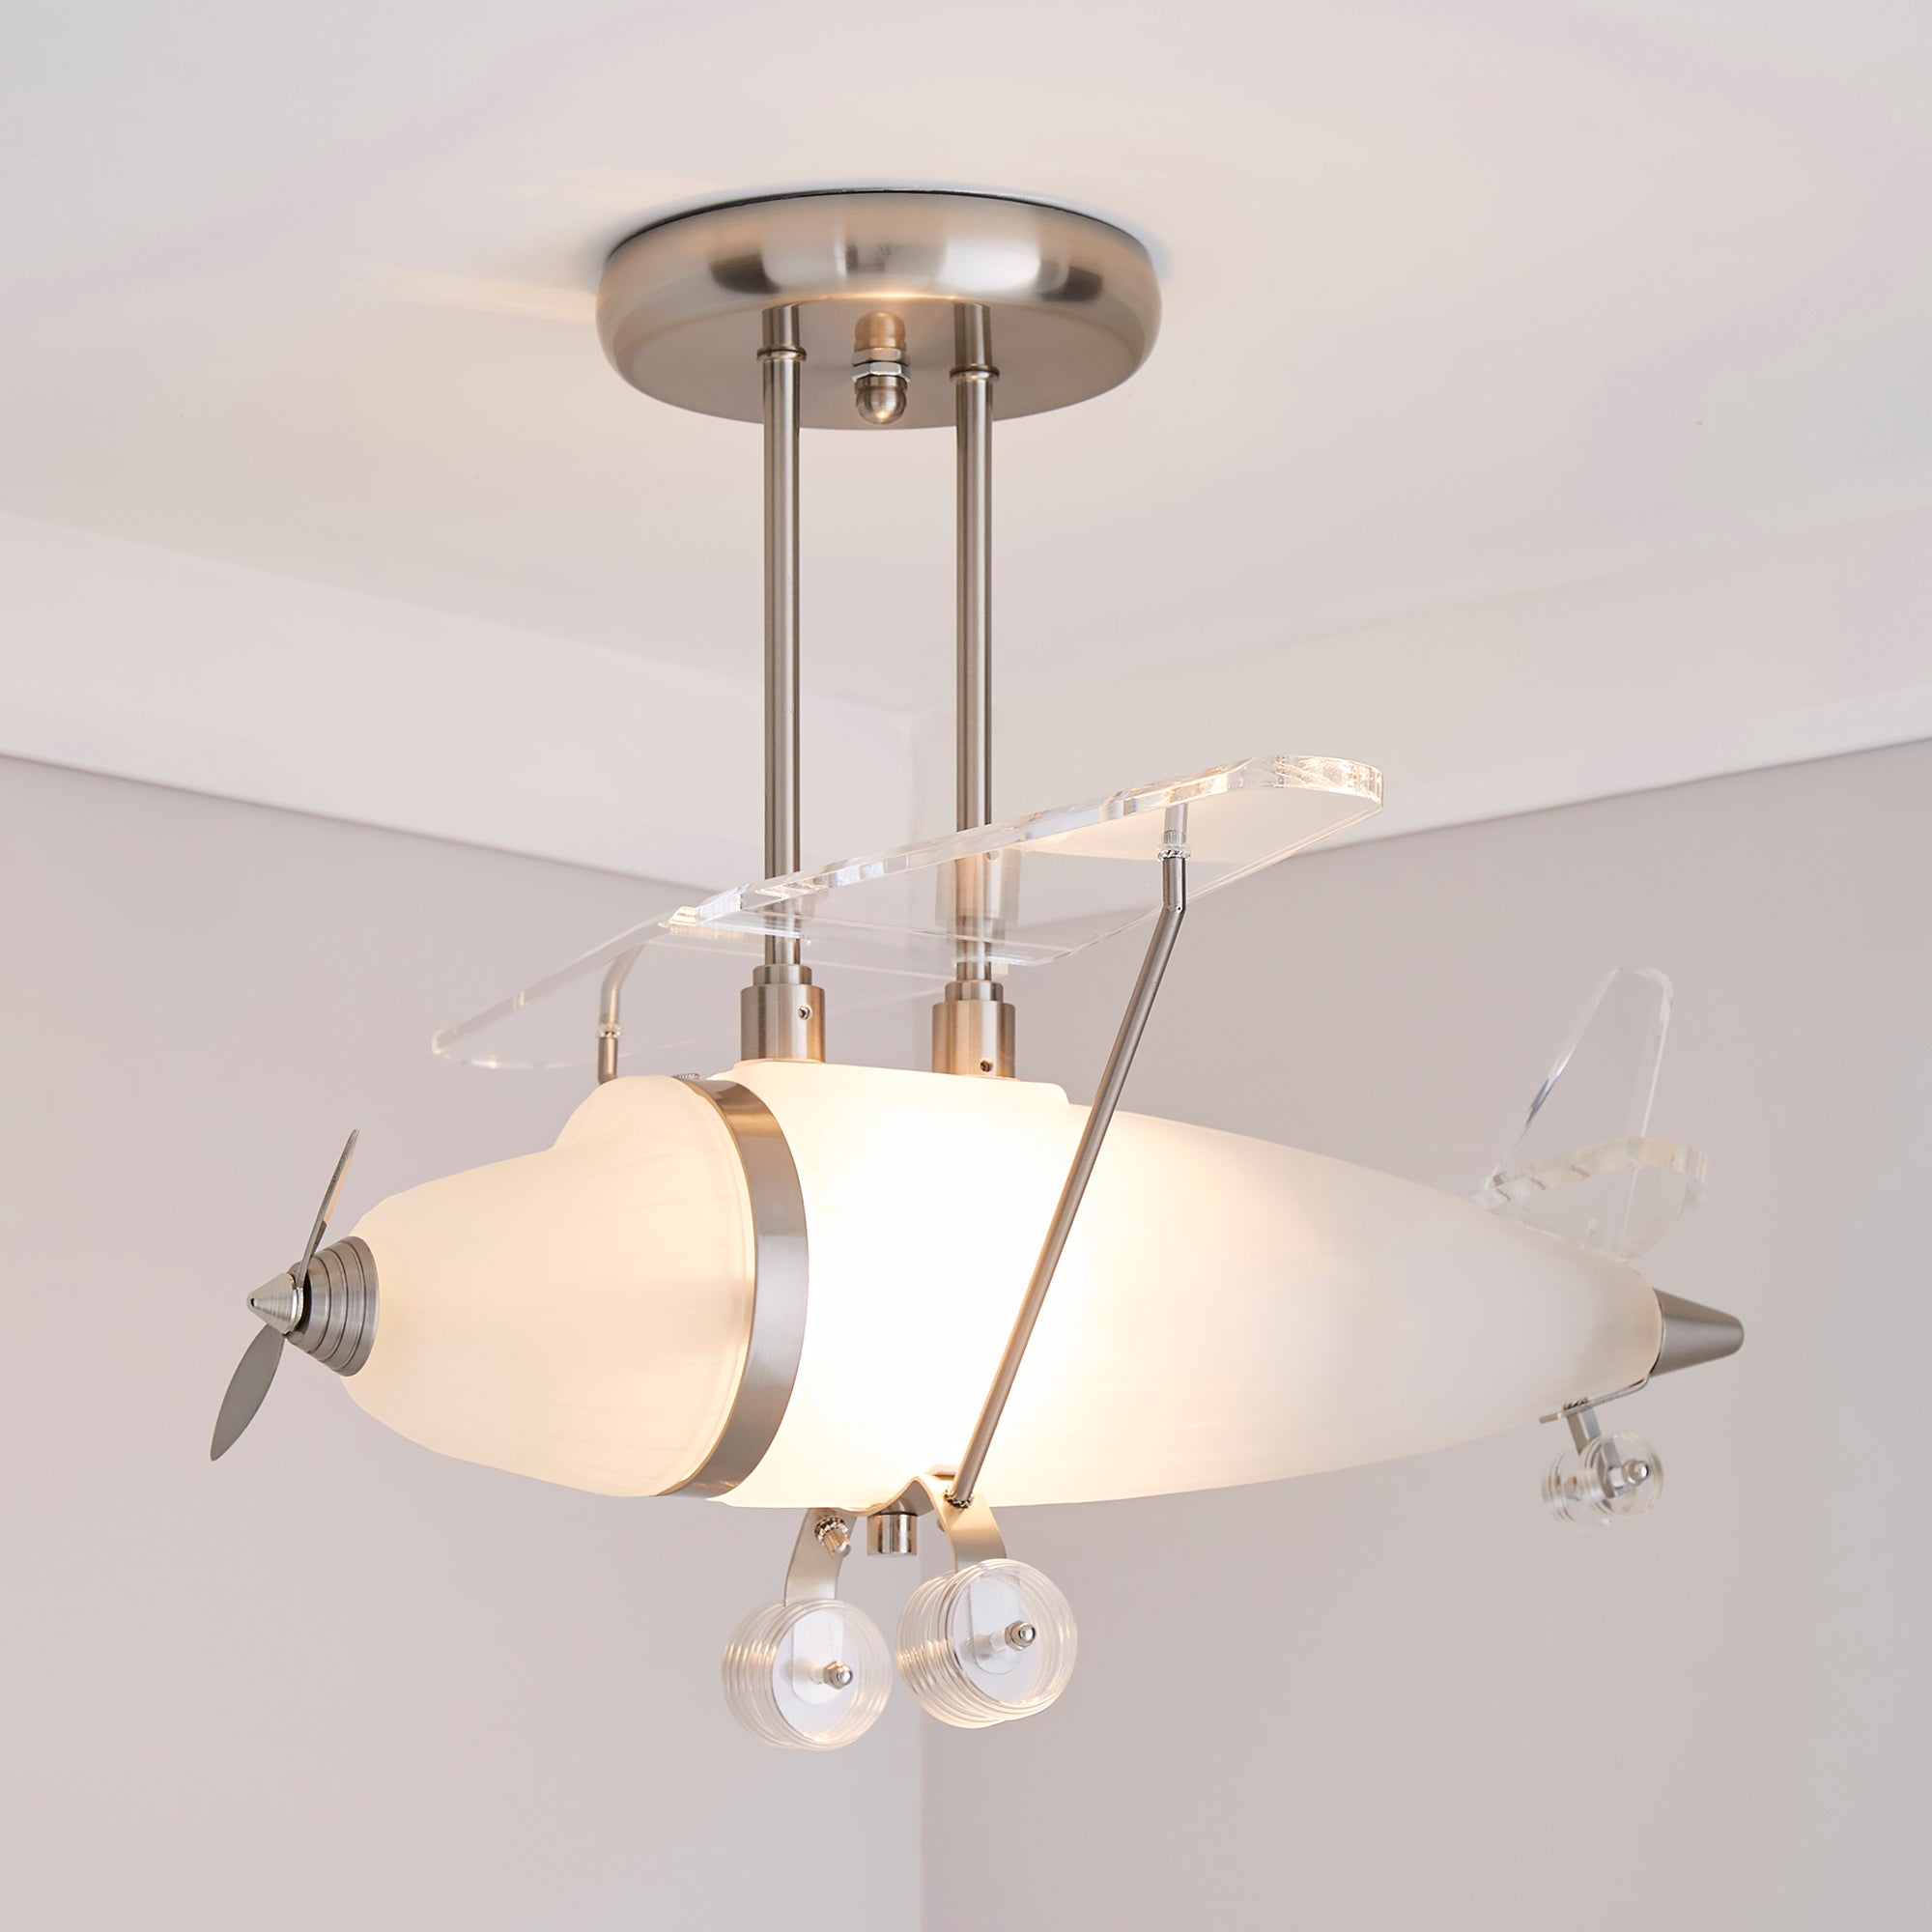 Airplane Light Ceiling Fitting Silver